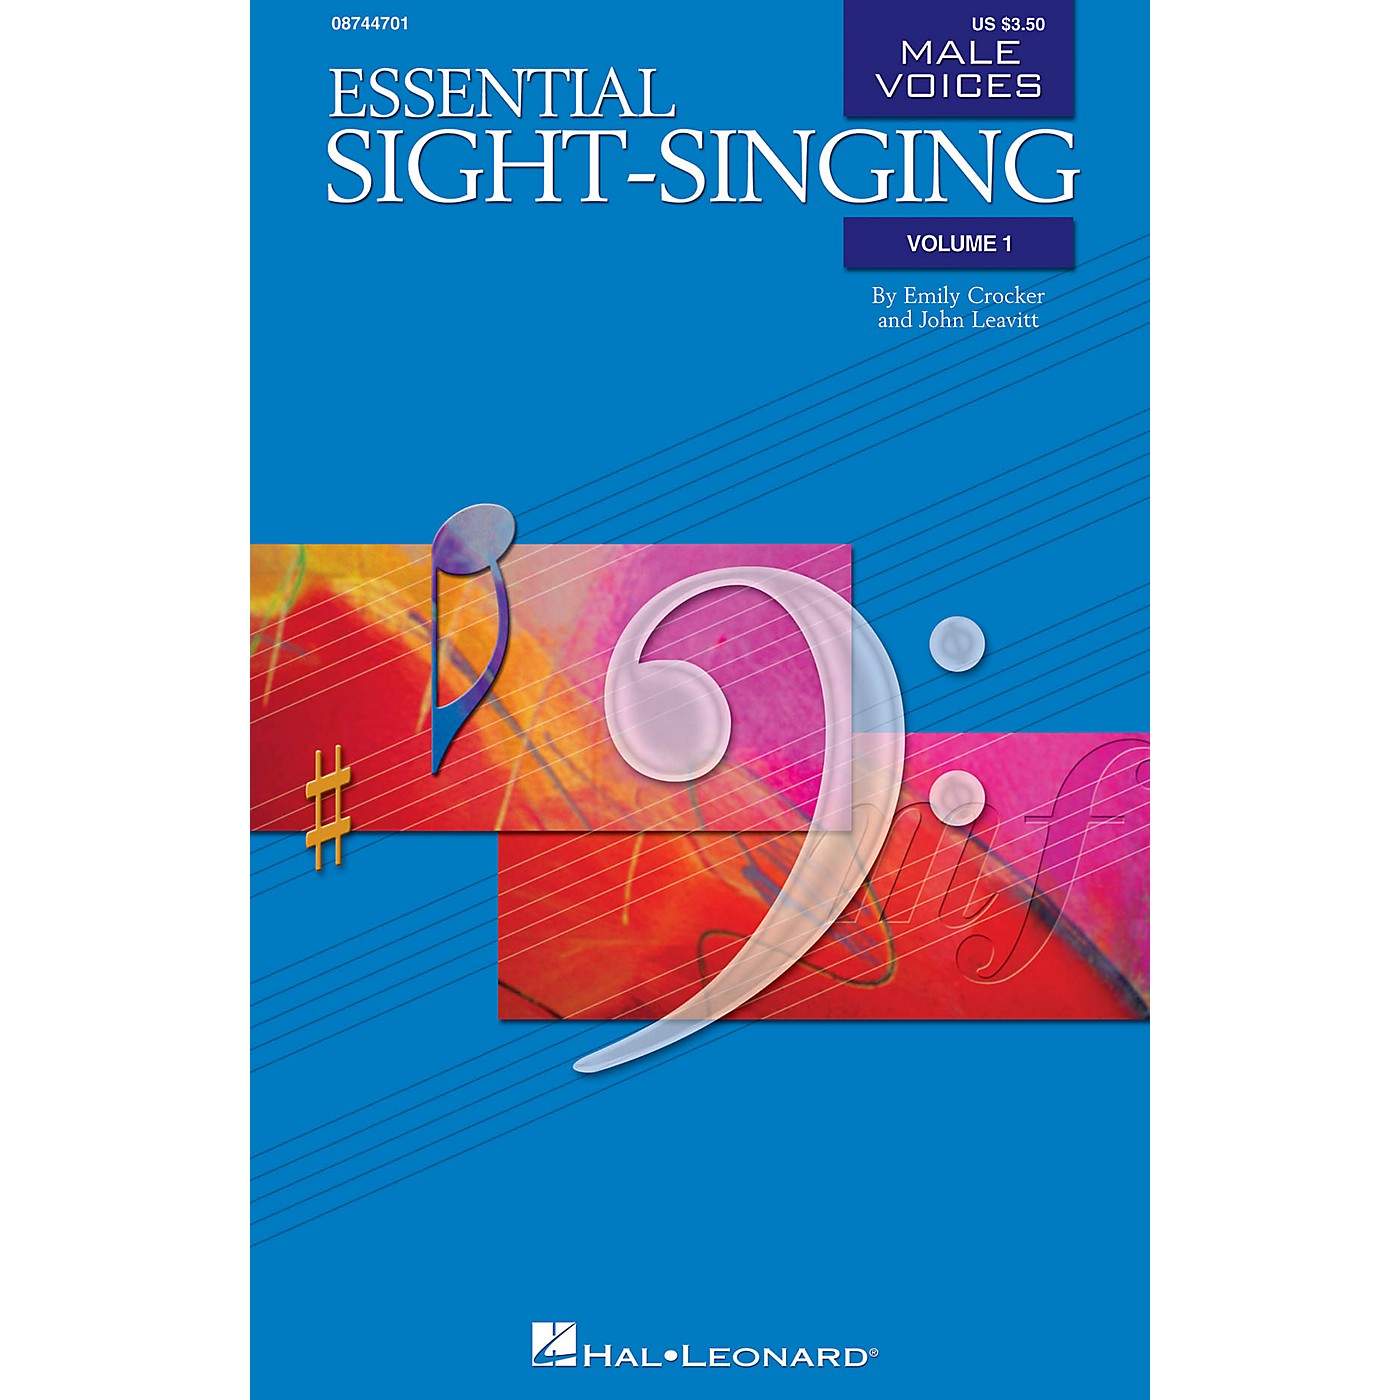 Hal Leonard Essential Sight-Singing Vol. 1 Male Voices (Male Voices Accompaniment CD Volume 1) CD ACCOMP thumbnail